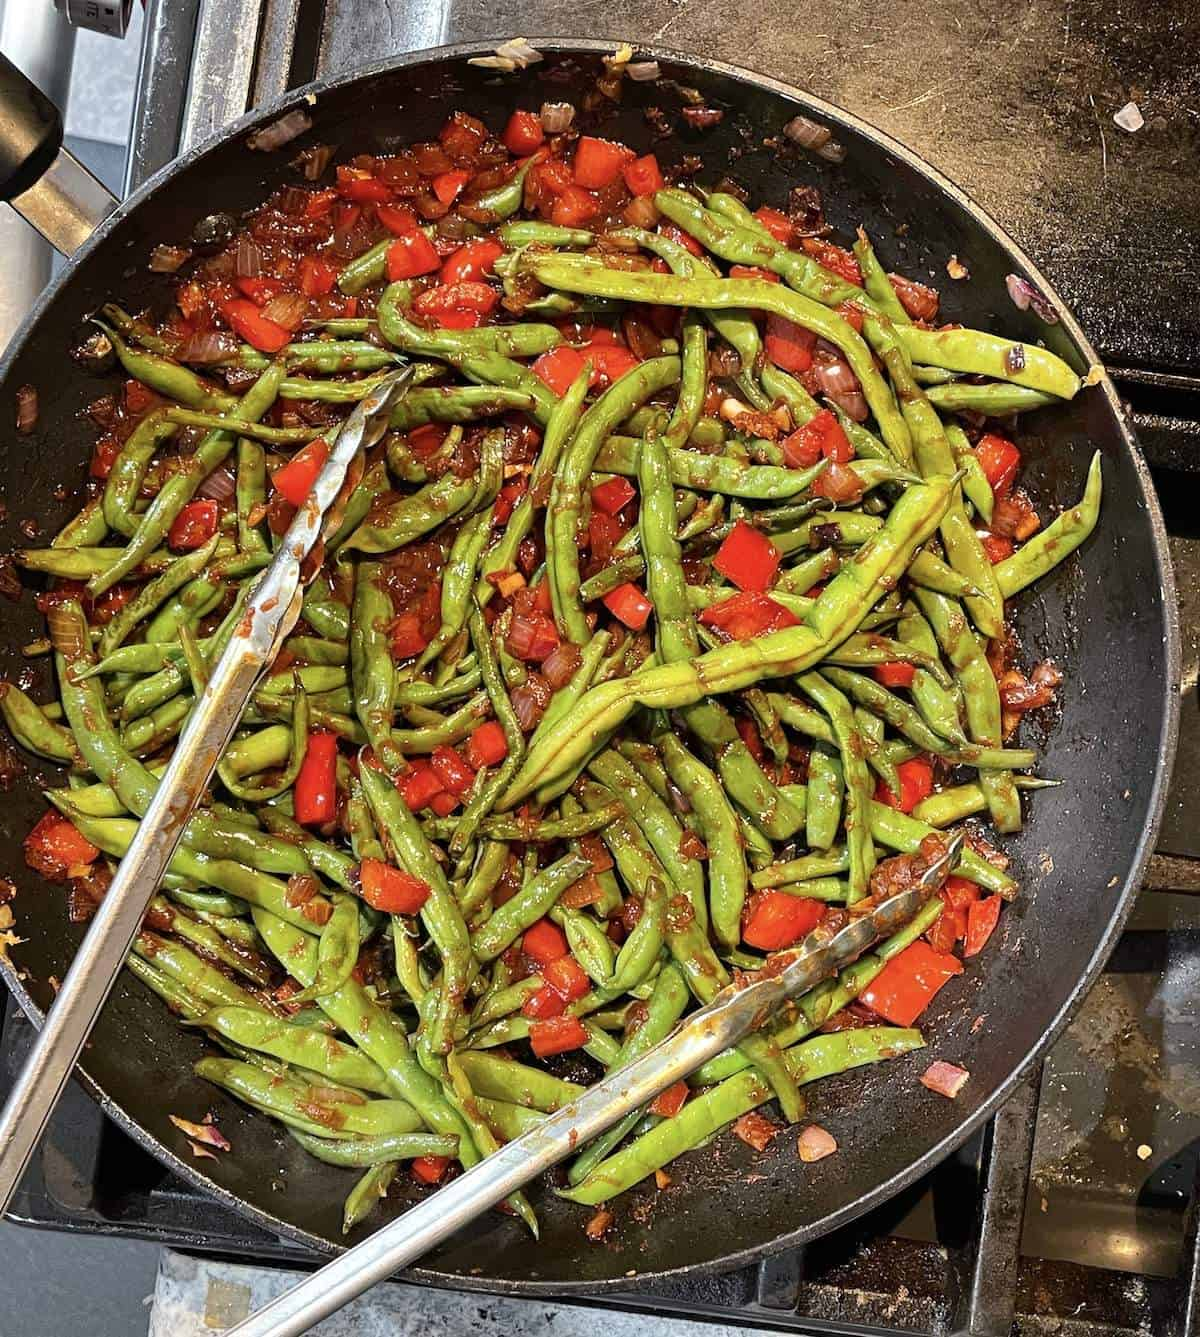 Green beans, red onion, and red bell pepper cooking in a frying pan.